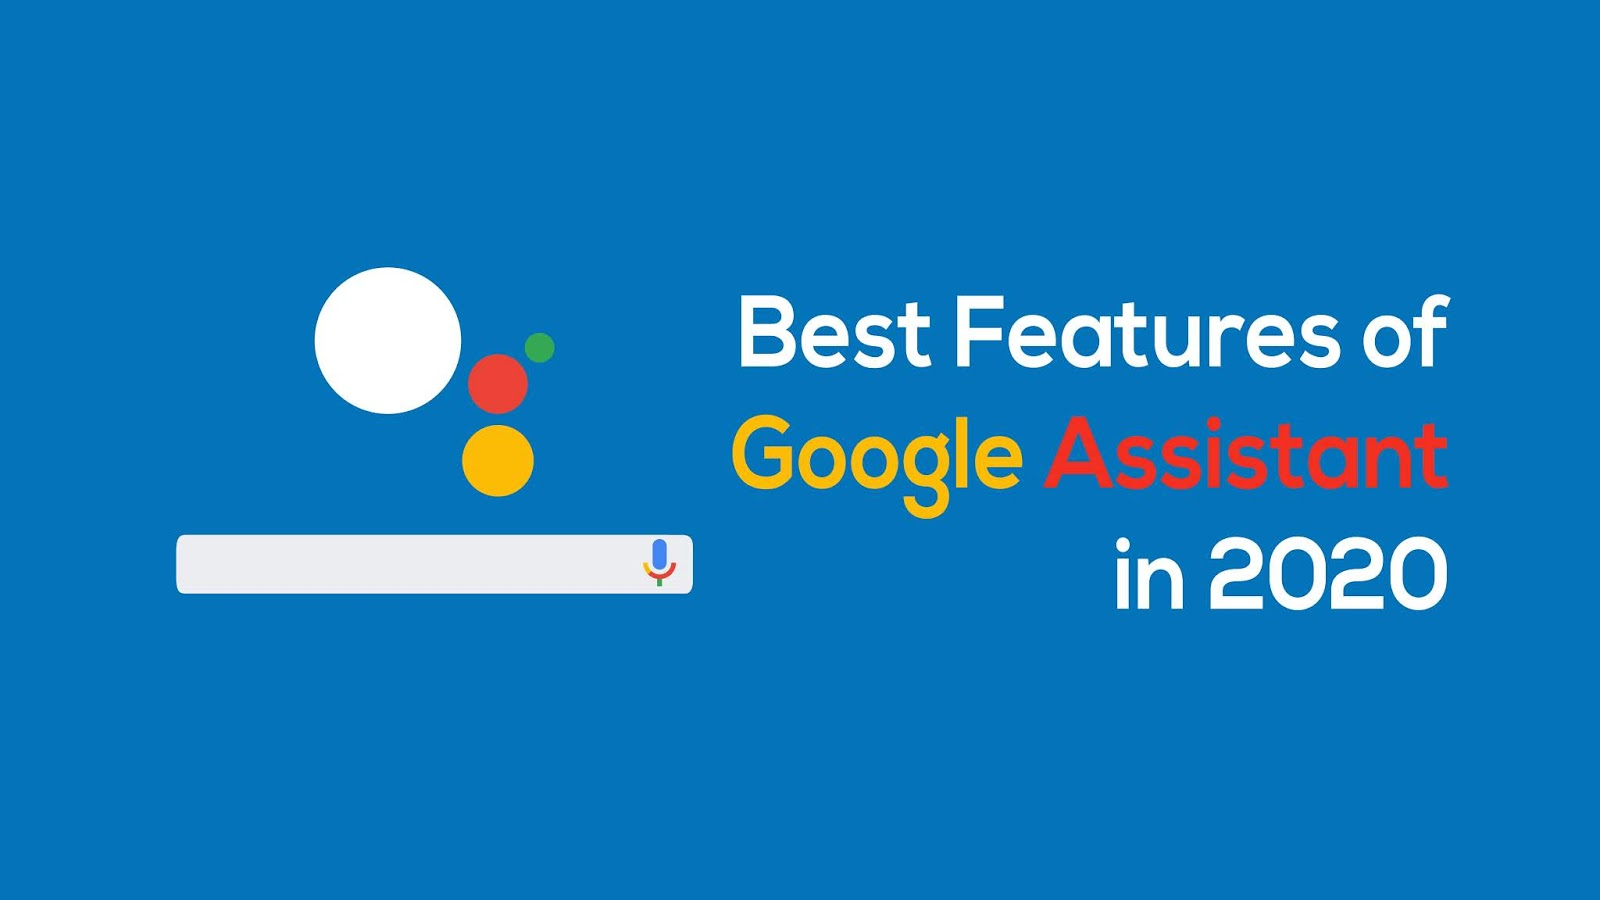 best features of Google assistant in 2020